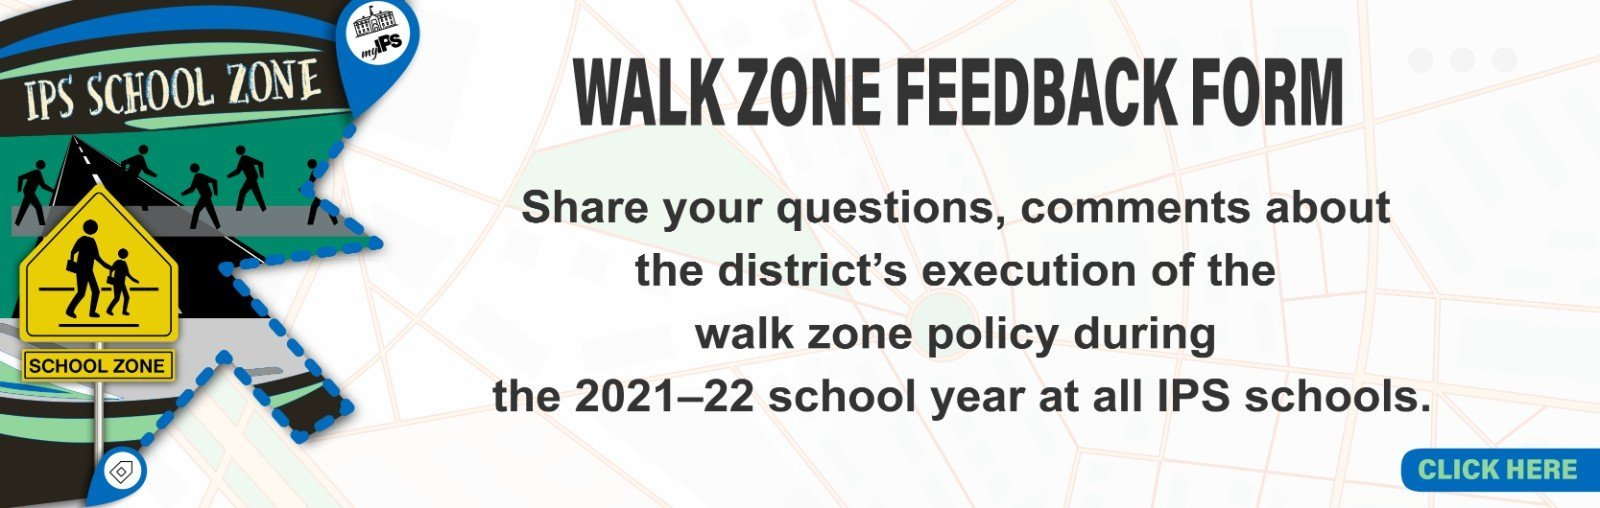 Walk zone feedback form